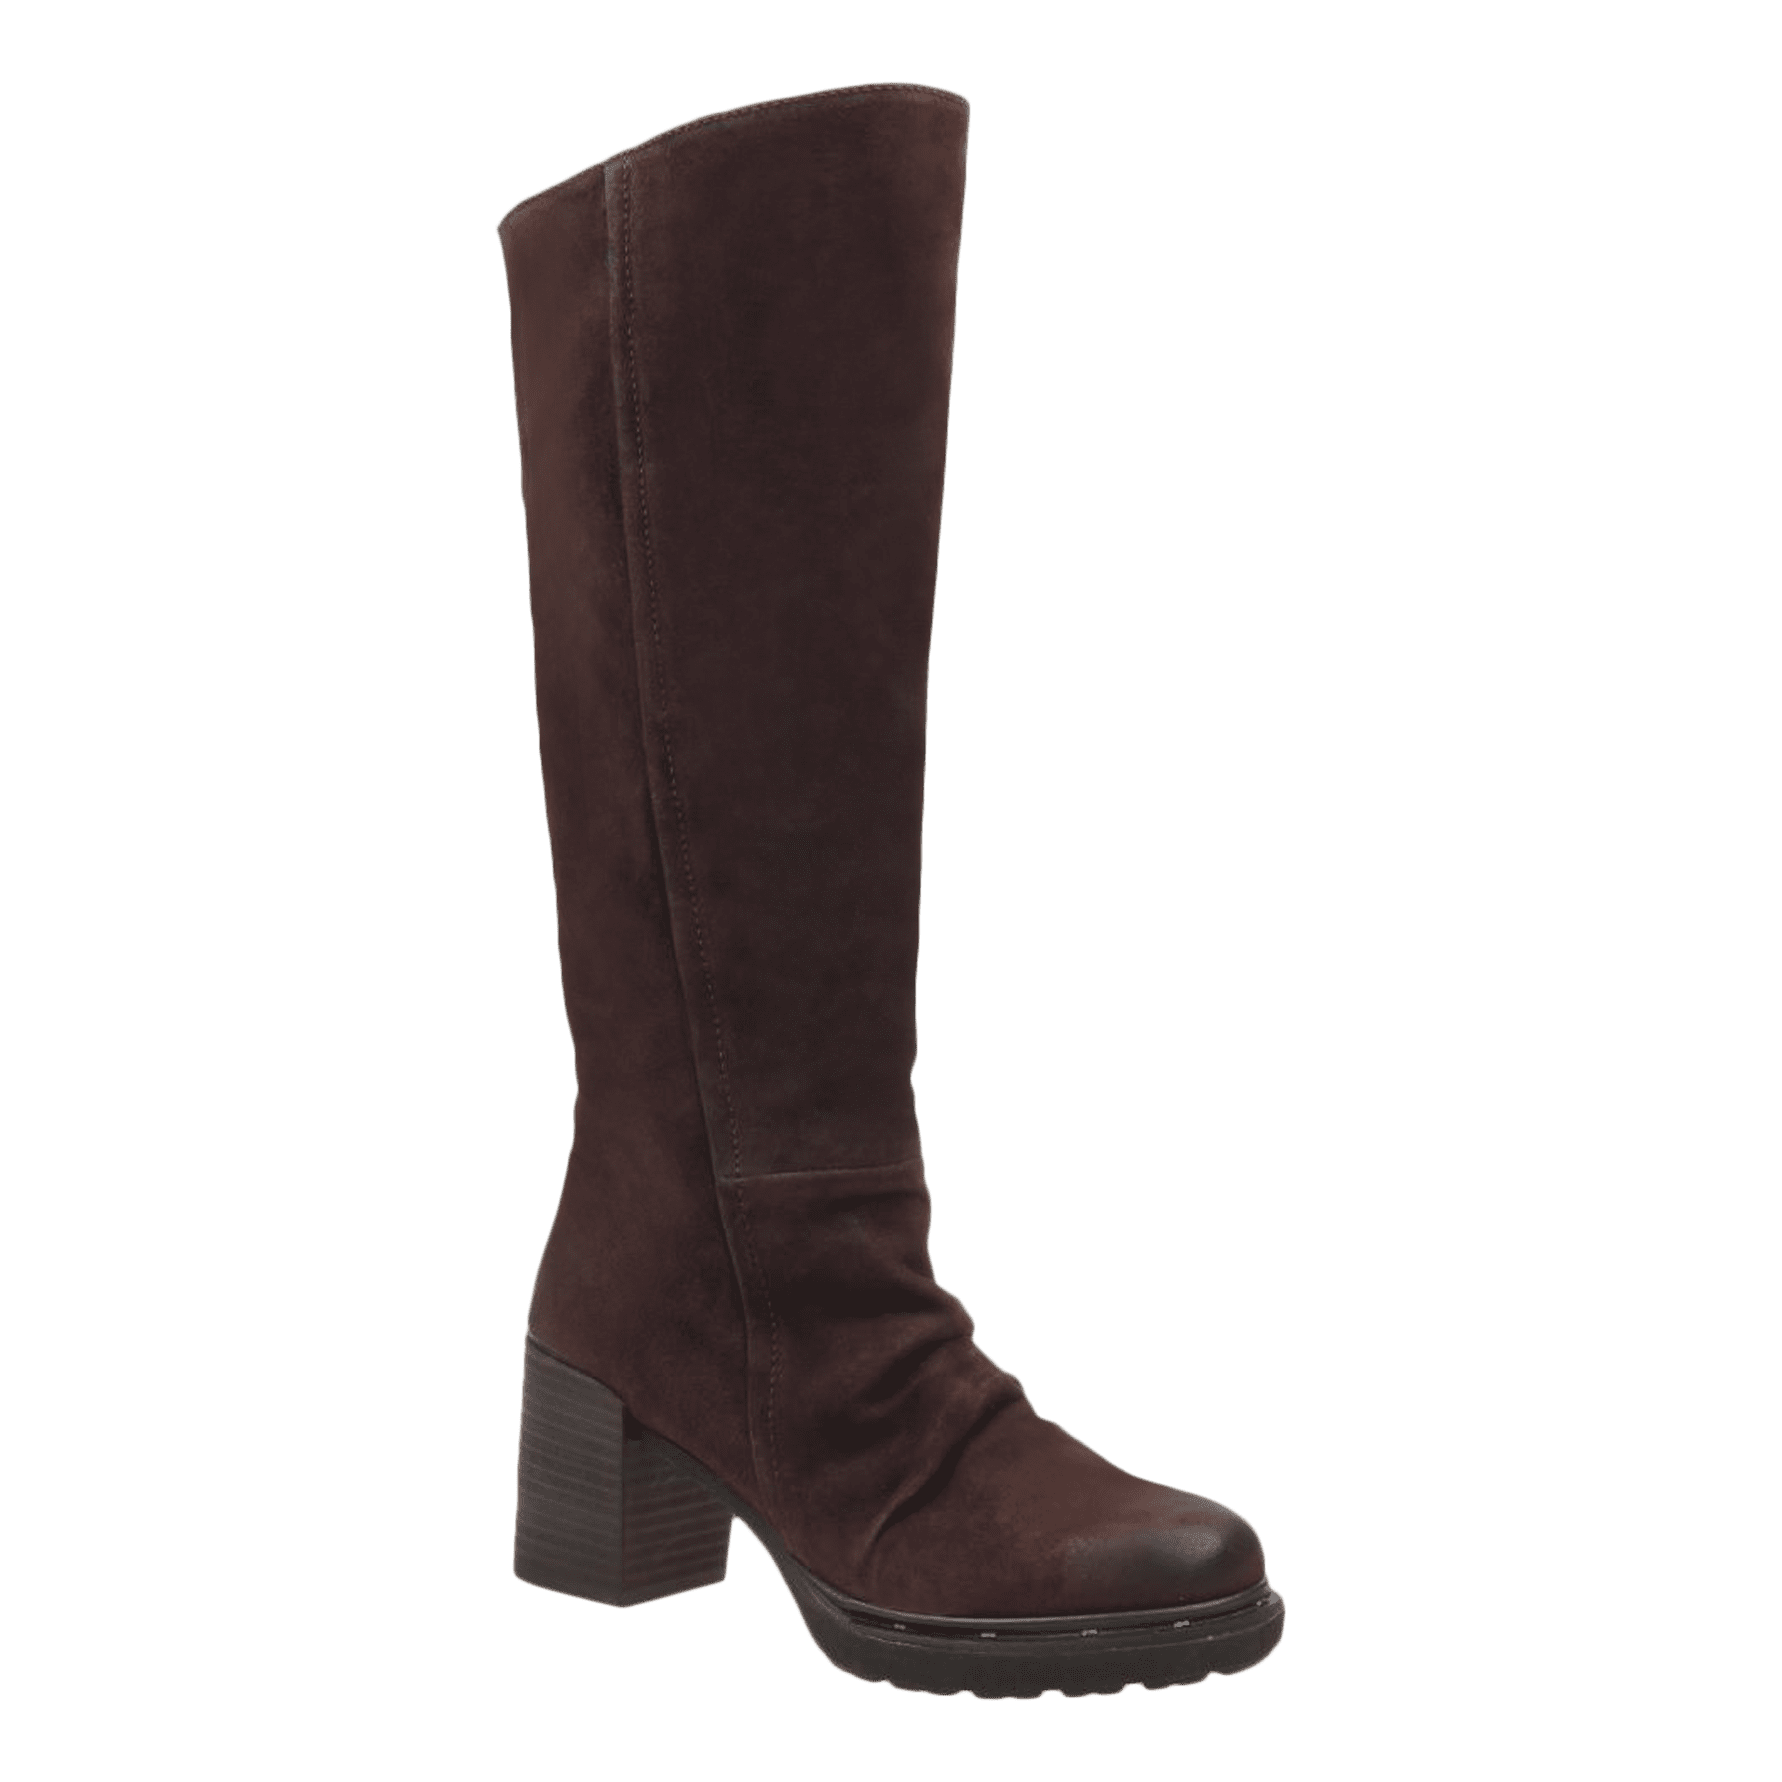 new high quality reliable quality hot sales GAMBOL in DARK BROWN Knee High Boots